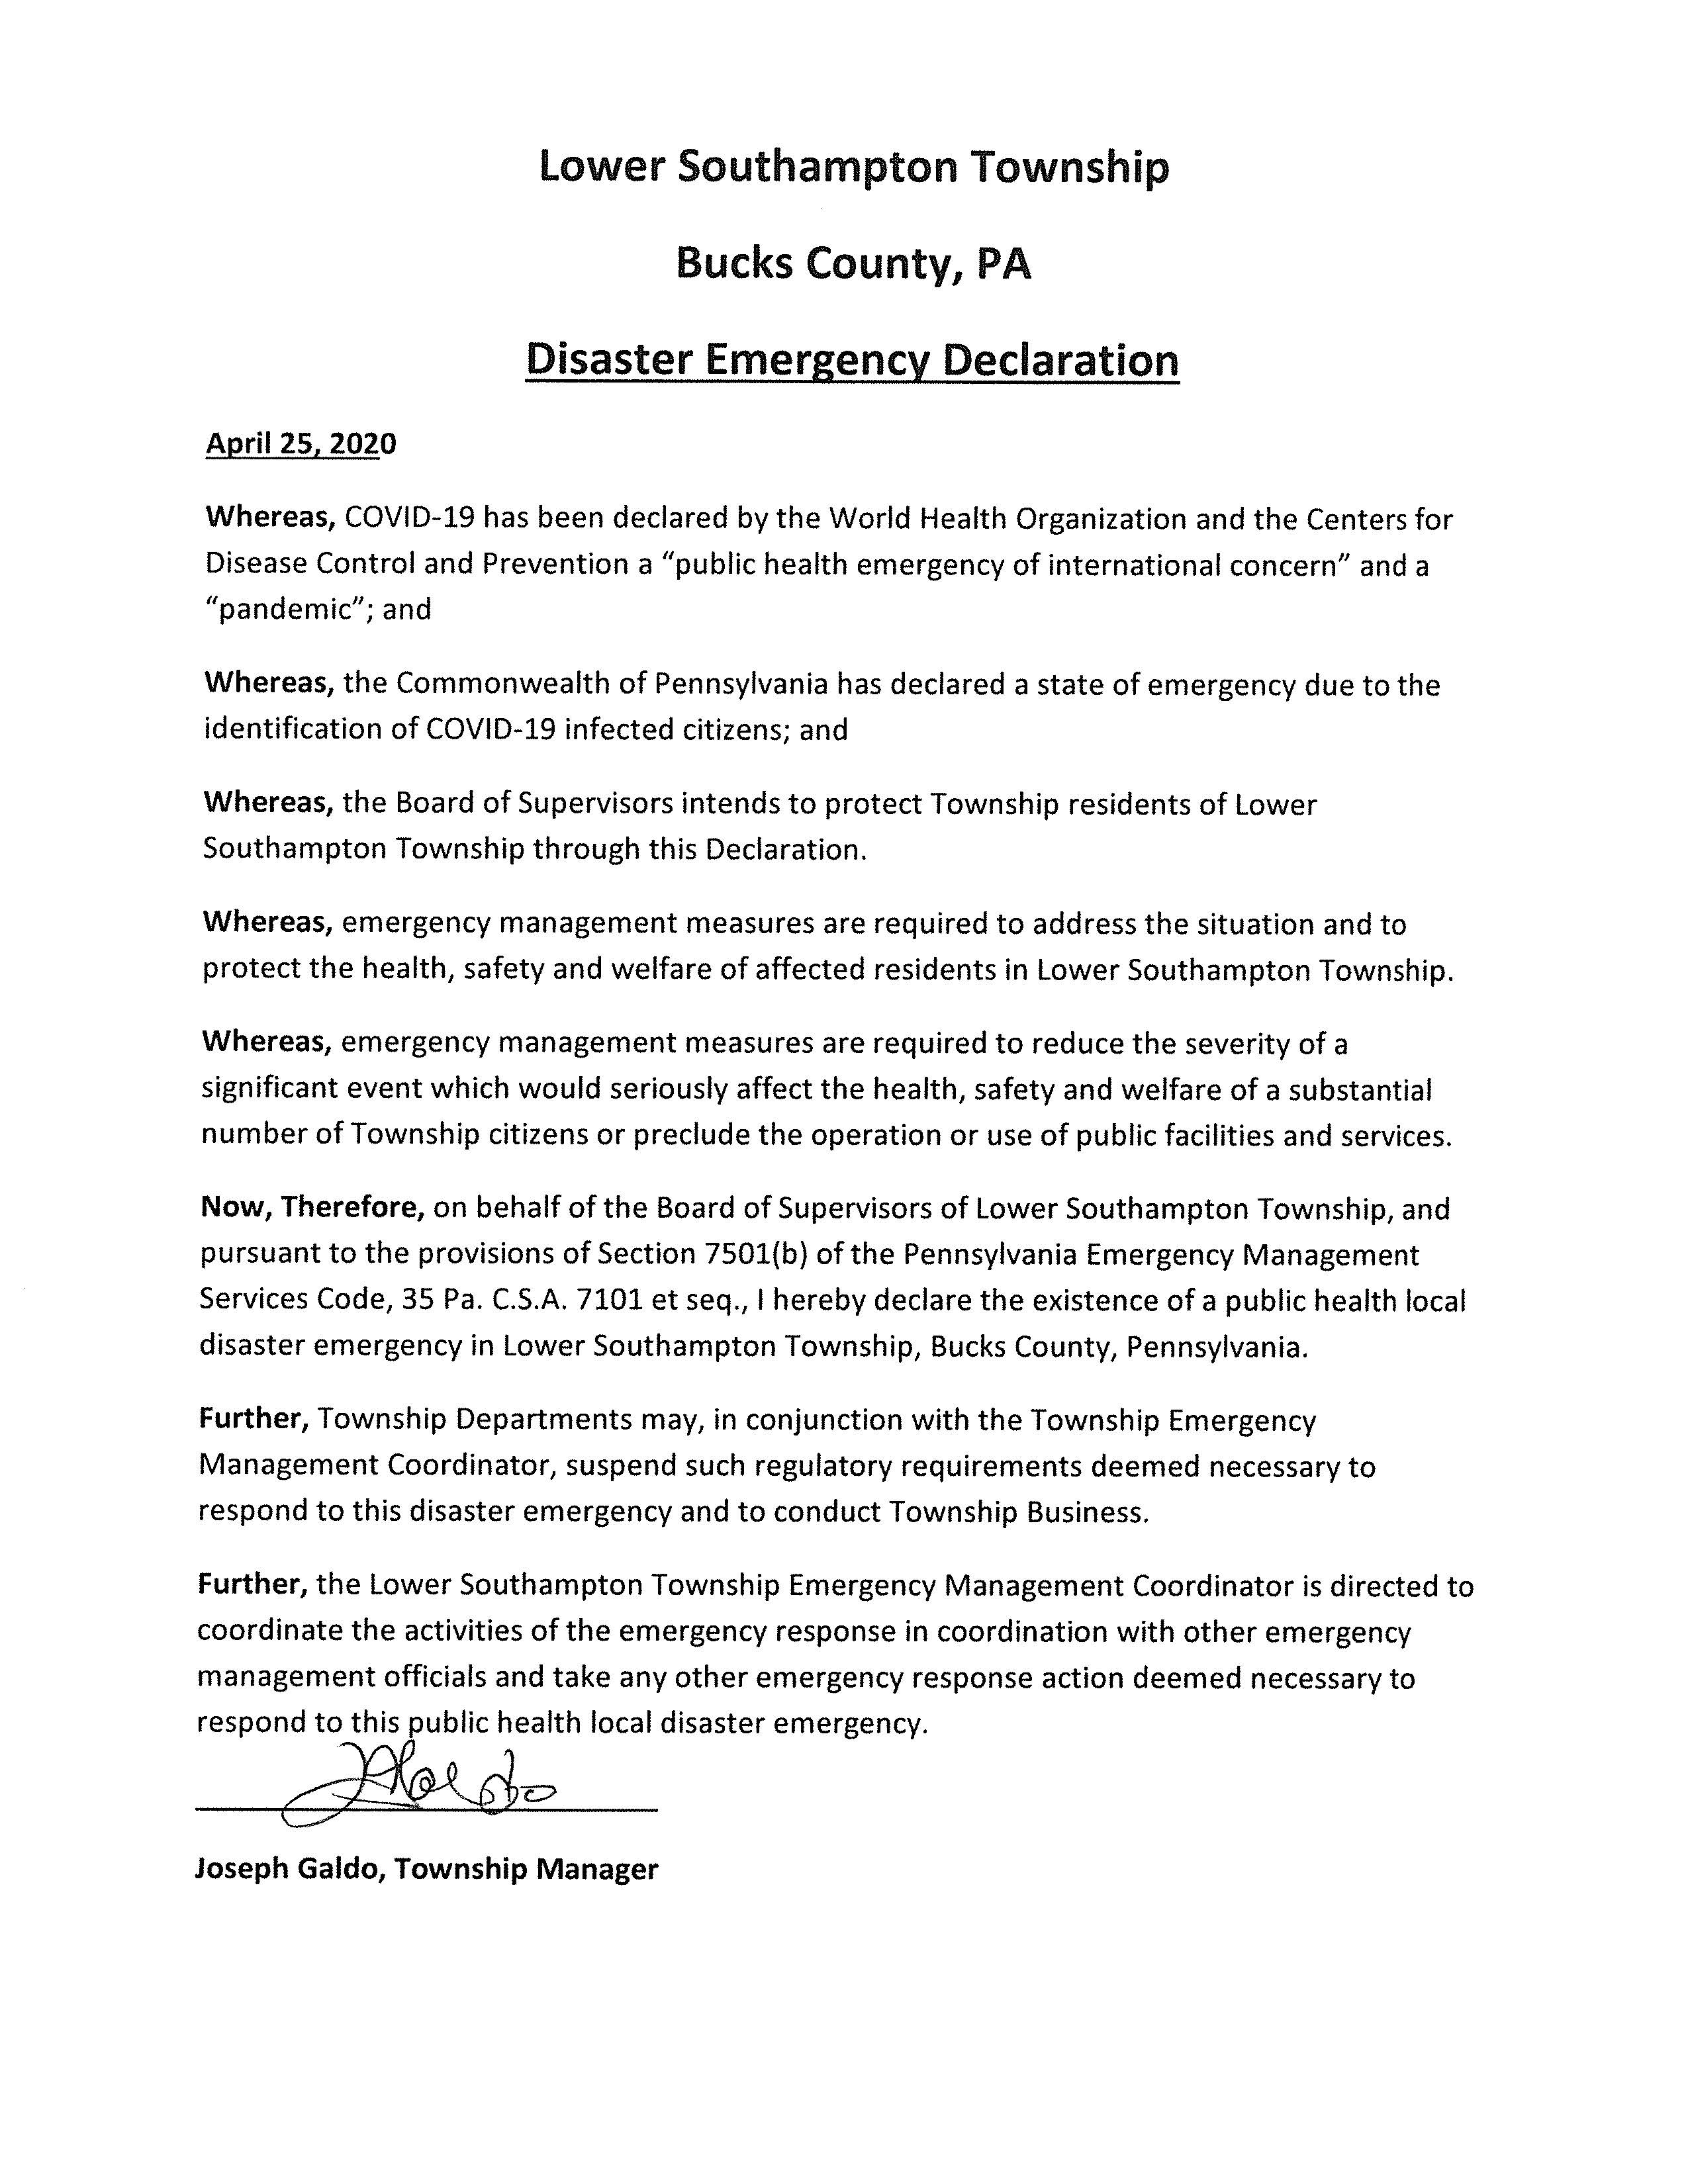 emergencydeclarations_Page_1 April 25